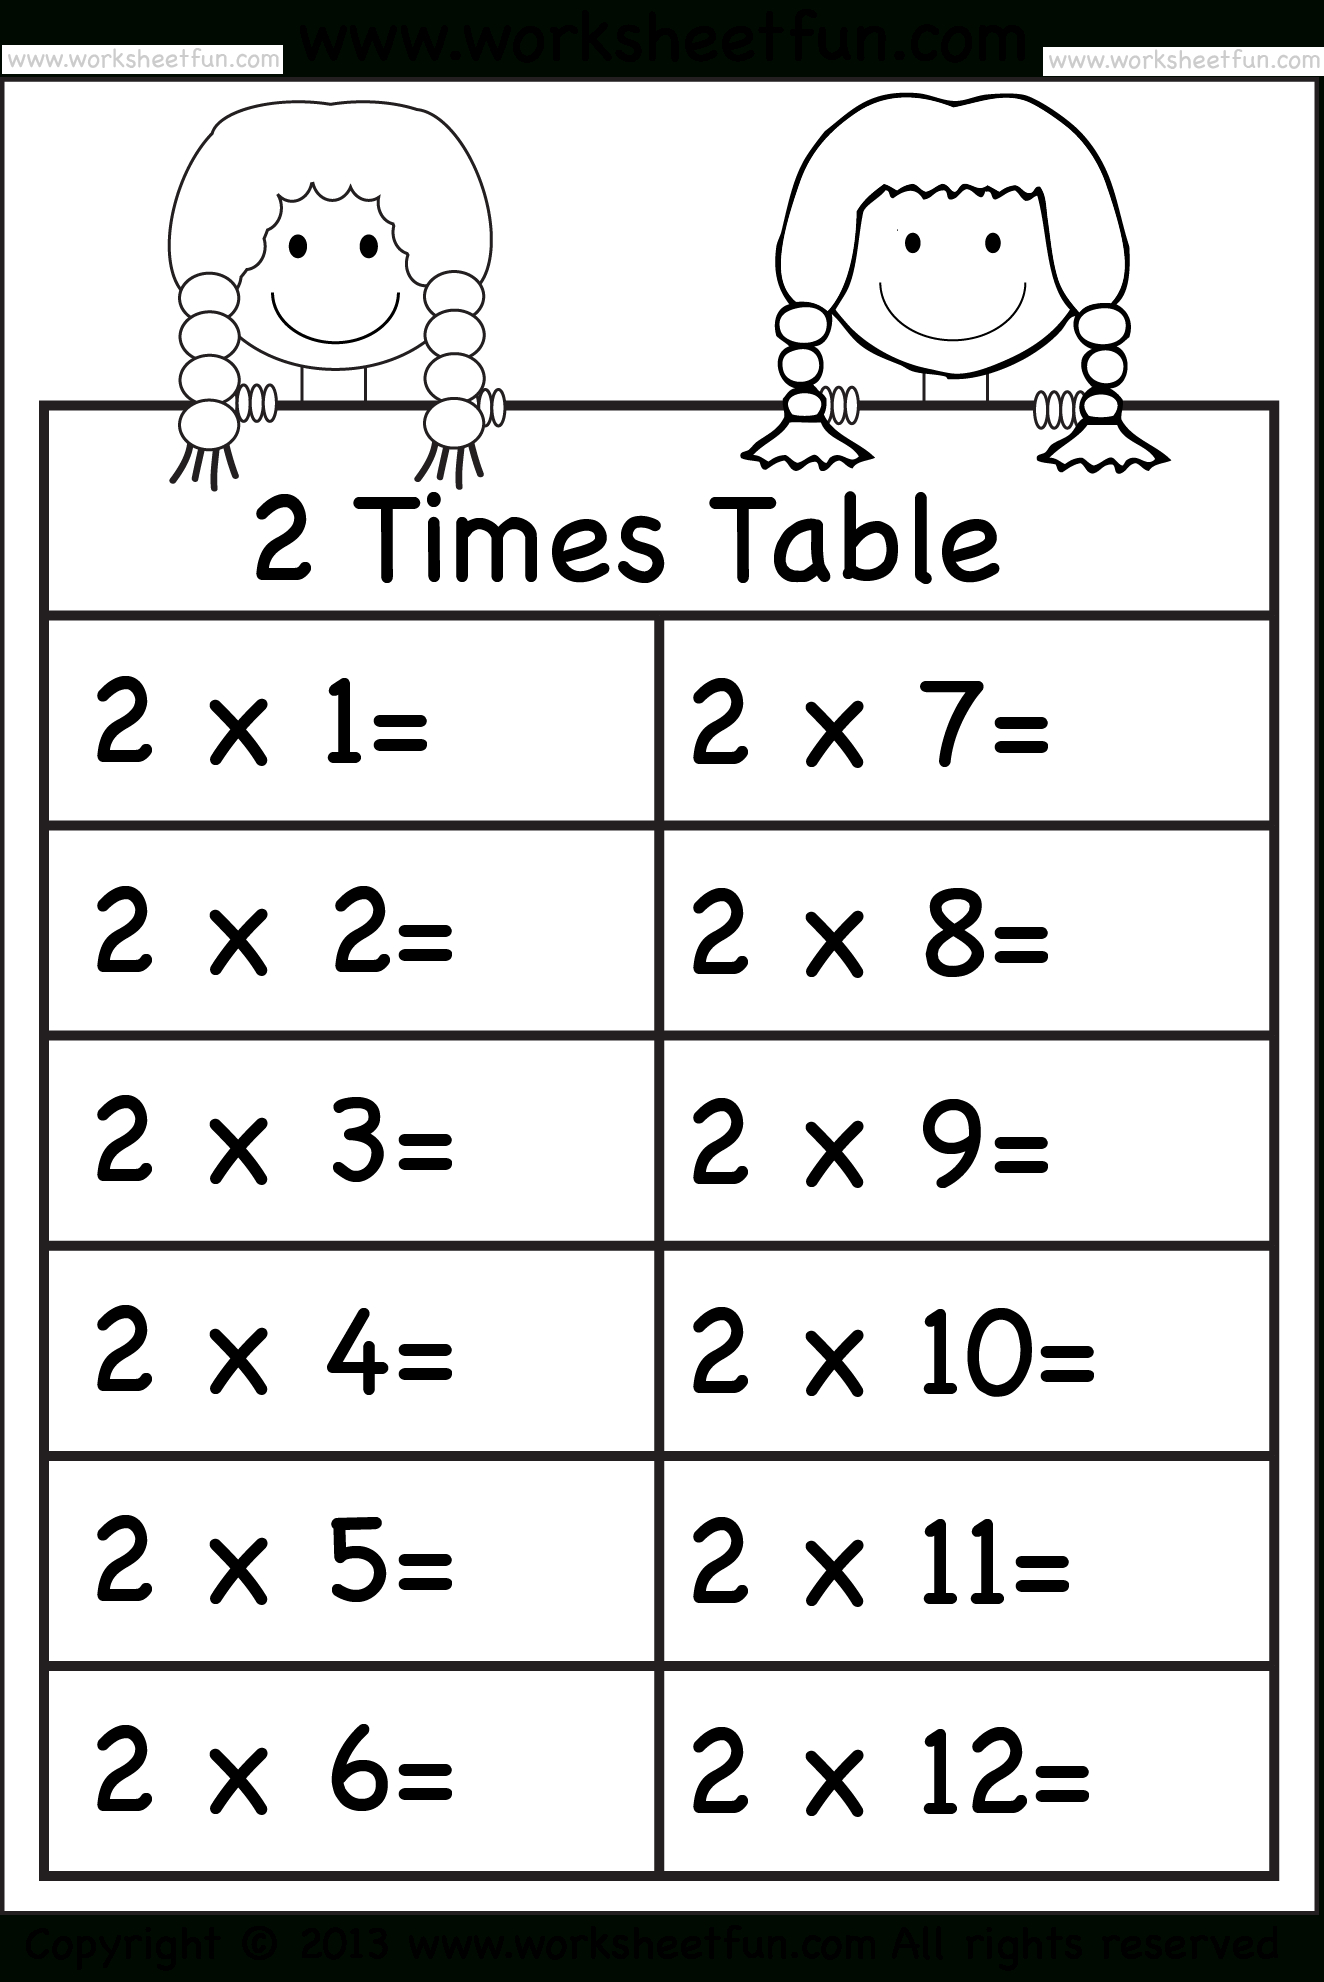 Times Tables Worksheets – 2, 3, 4, 5, 6, 7, 8, 9, 10, 11 And throughout Printable Multiplication Worksheets 3 Times Table